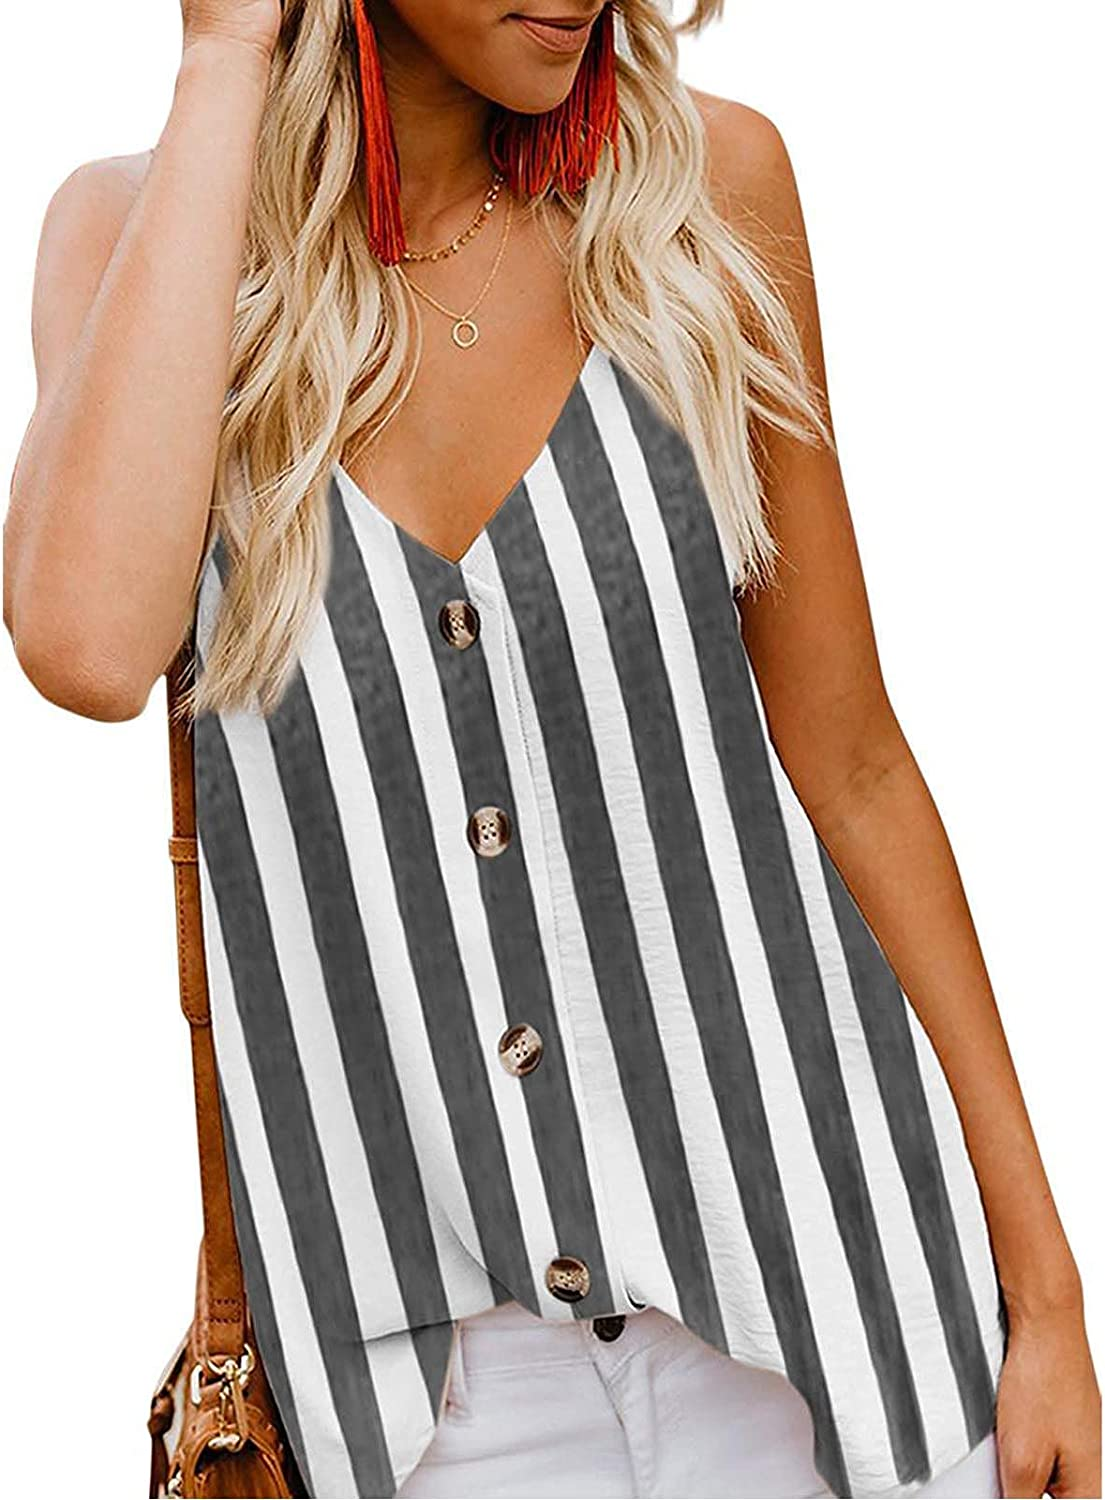 Womens Stripe Buttons Camis Tops Summer Loose V-Neck Vest Sling Camisole Sleeveless T-Shirt